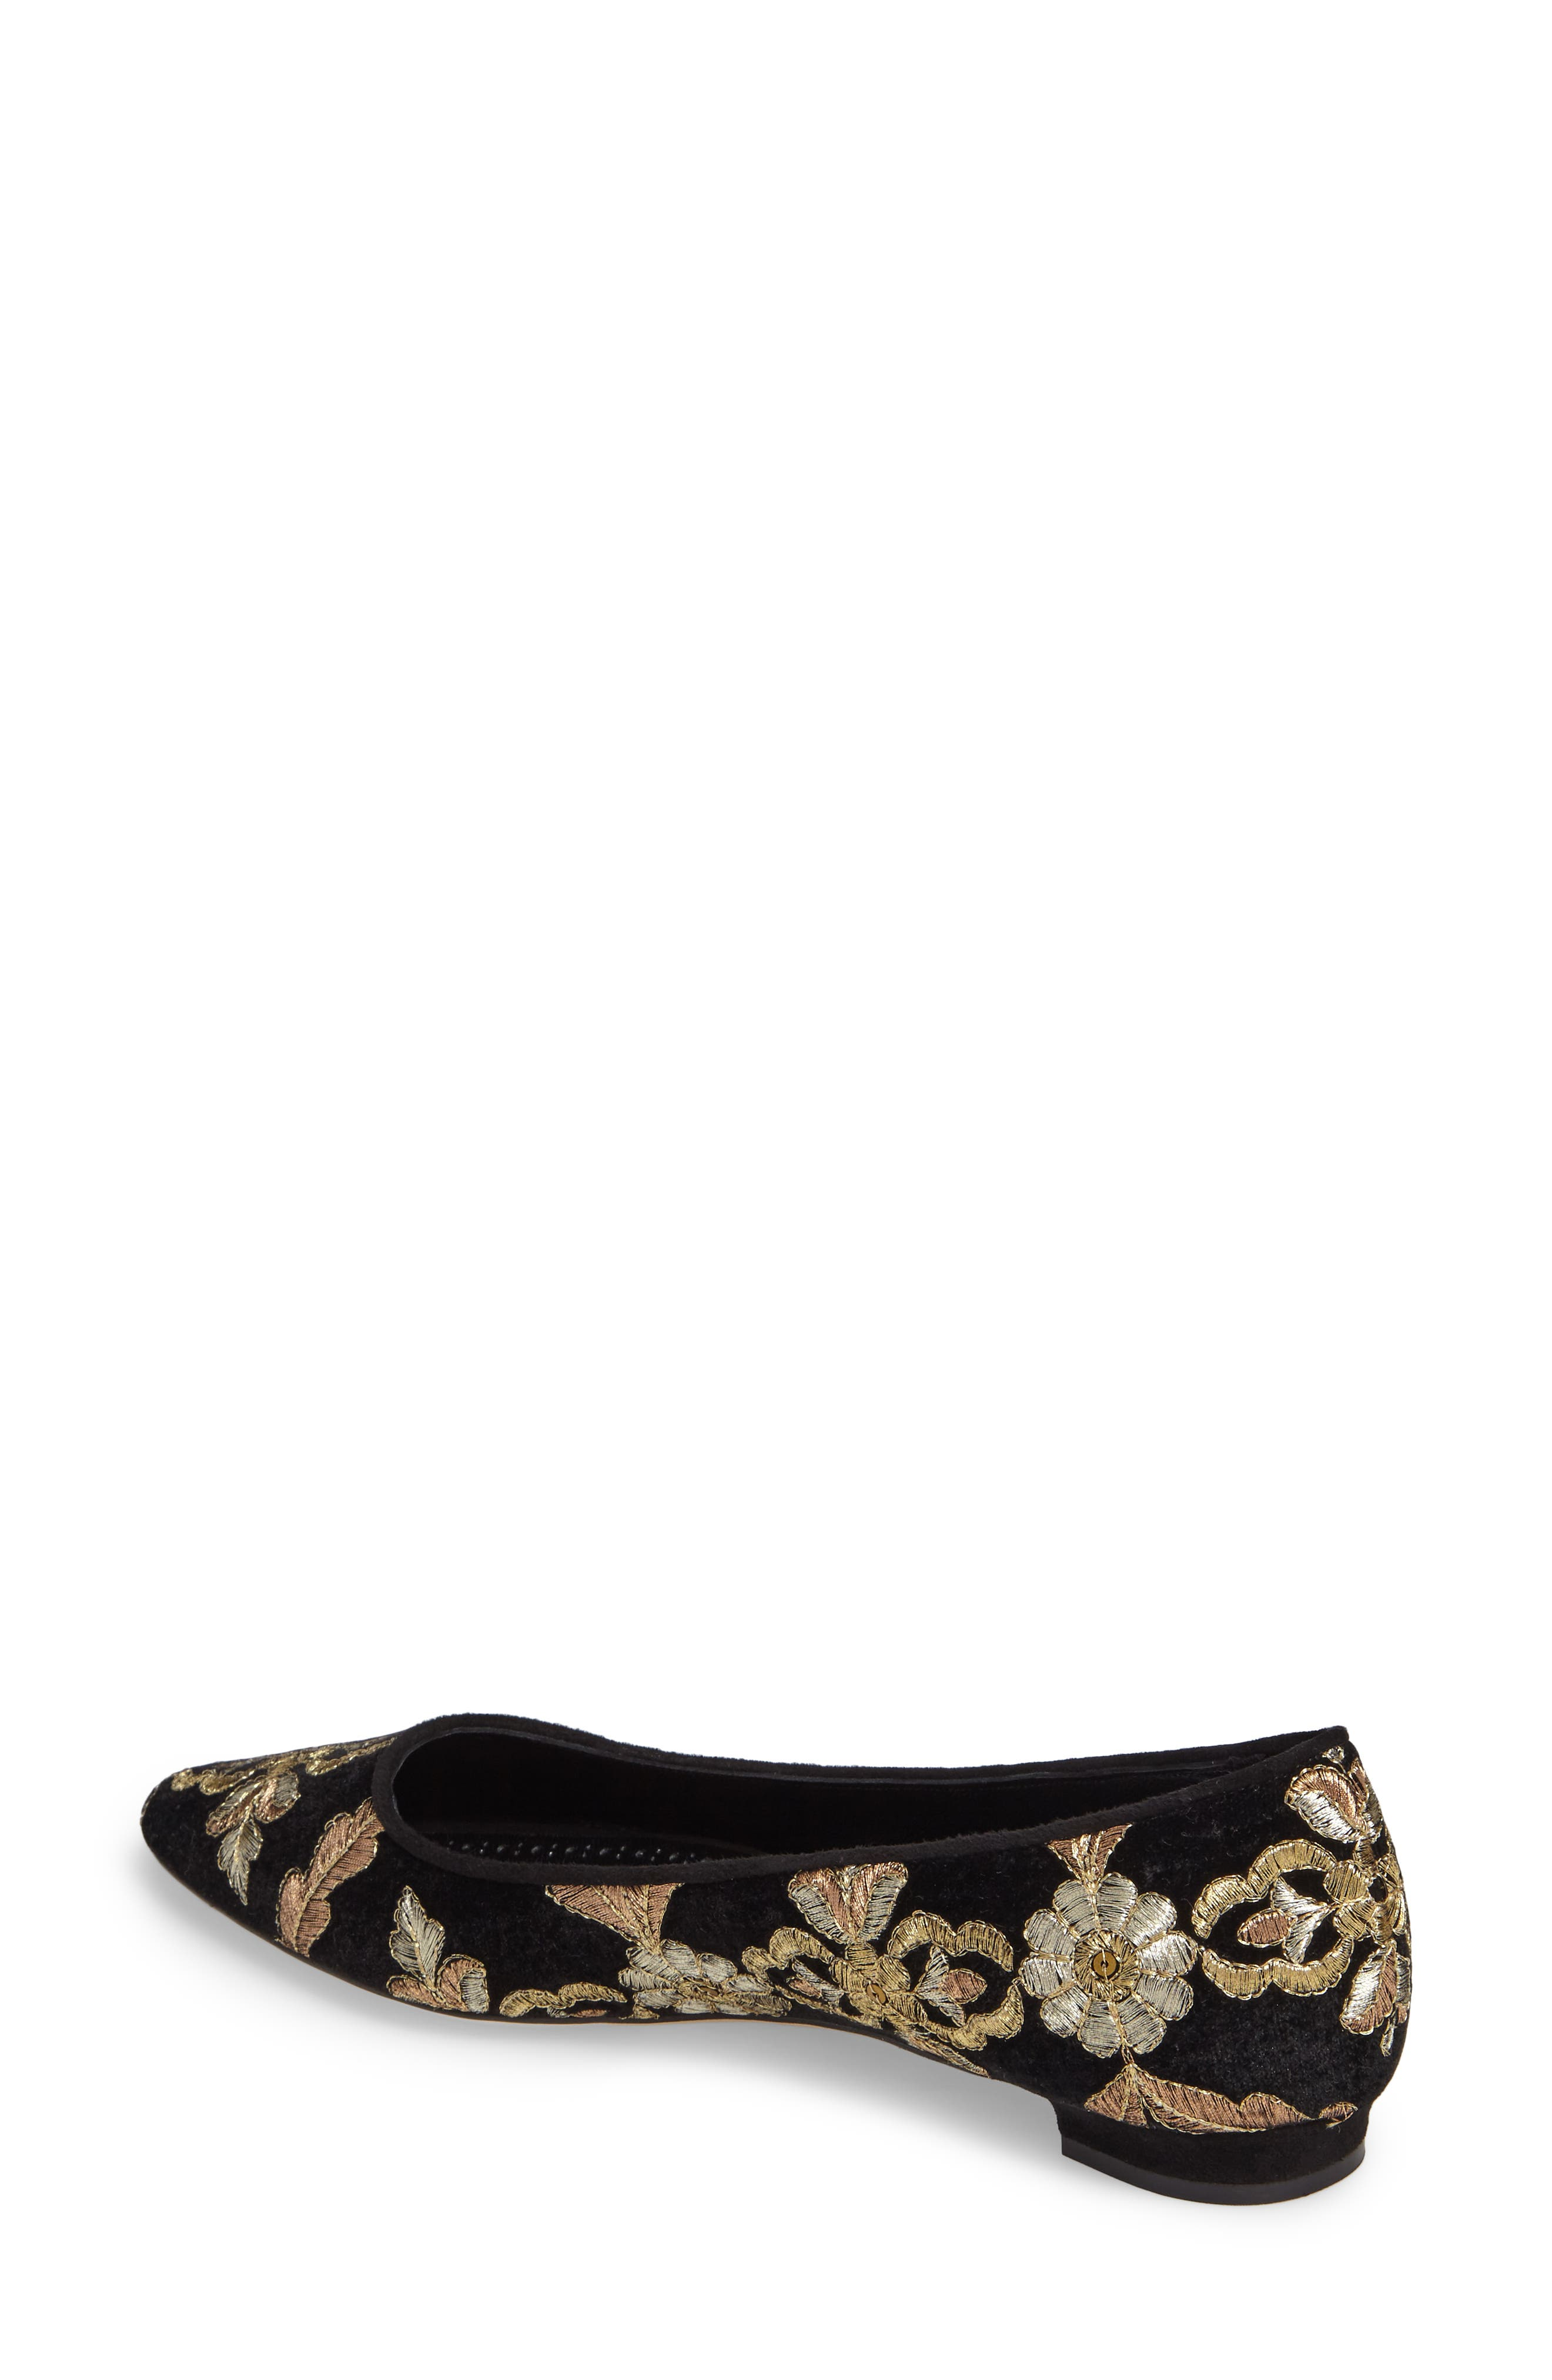 Tittermo Floral Embroidered Ballet Flat,                             Alternate thumbnail 2, color,                             001